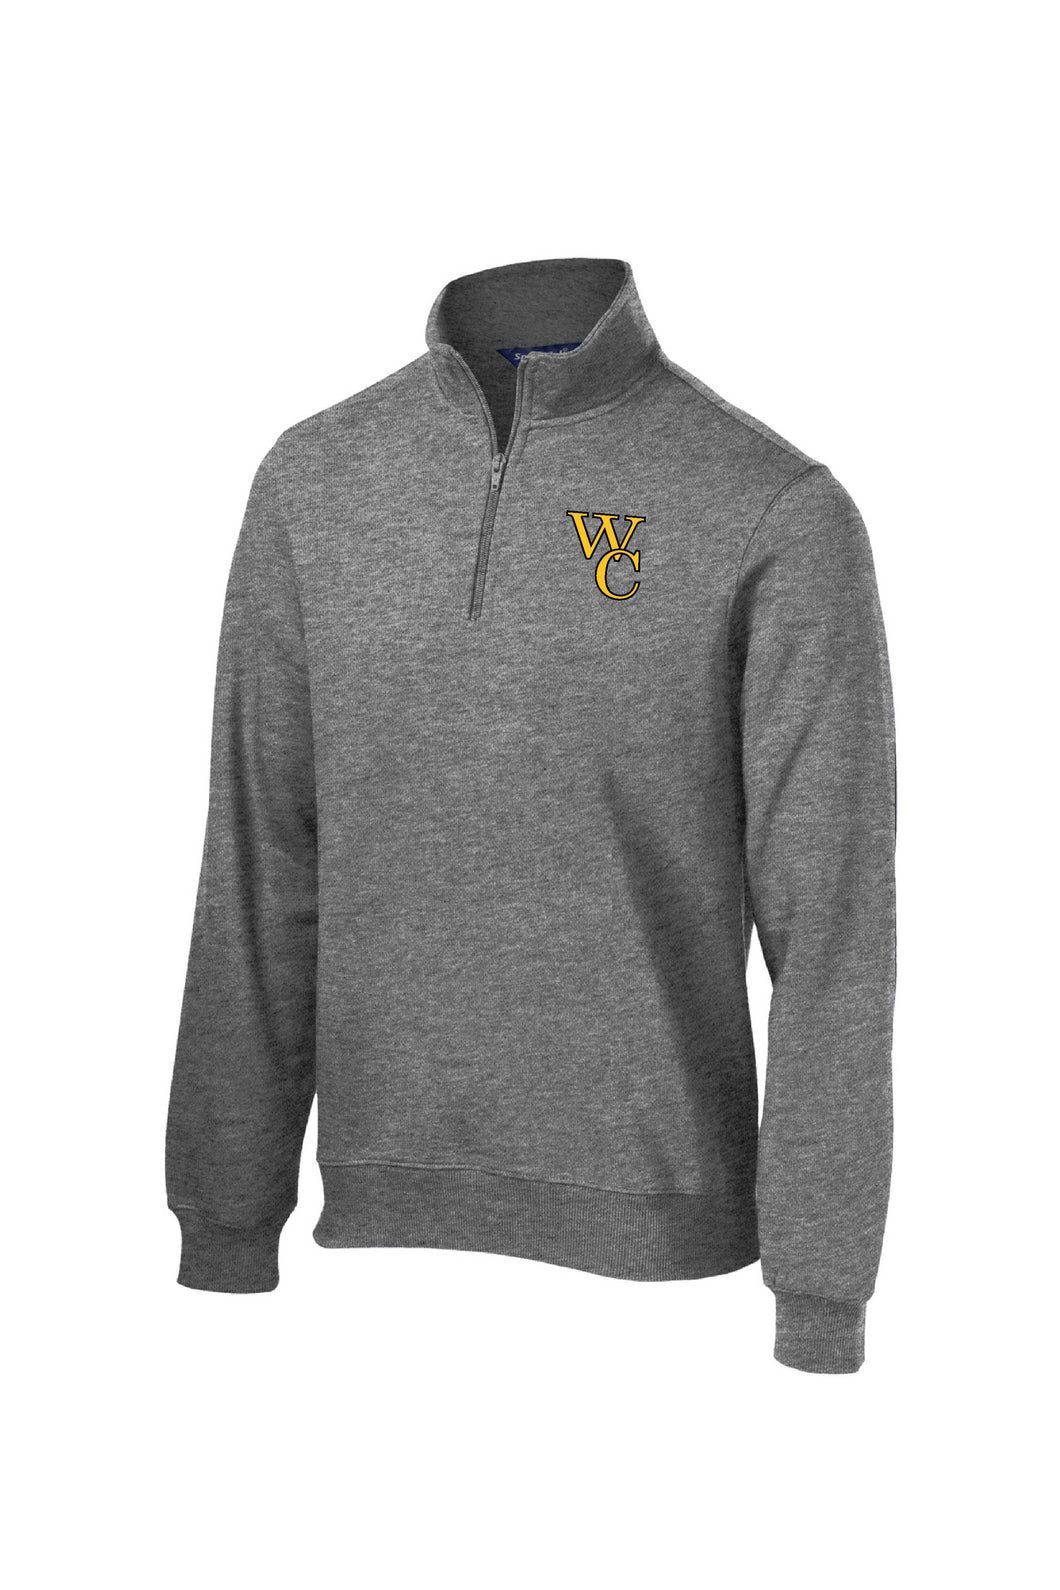 Woodford Embroidered 1/4-Zip Sweatshirt